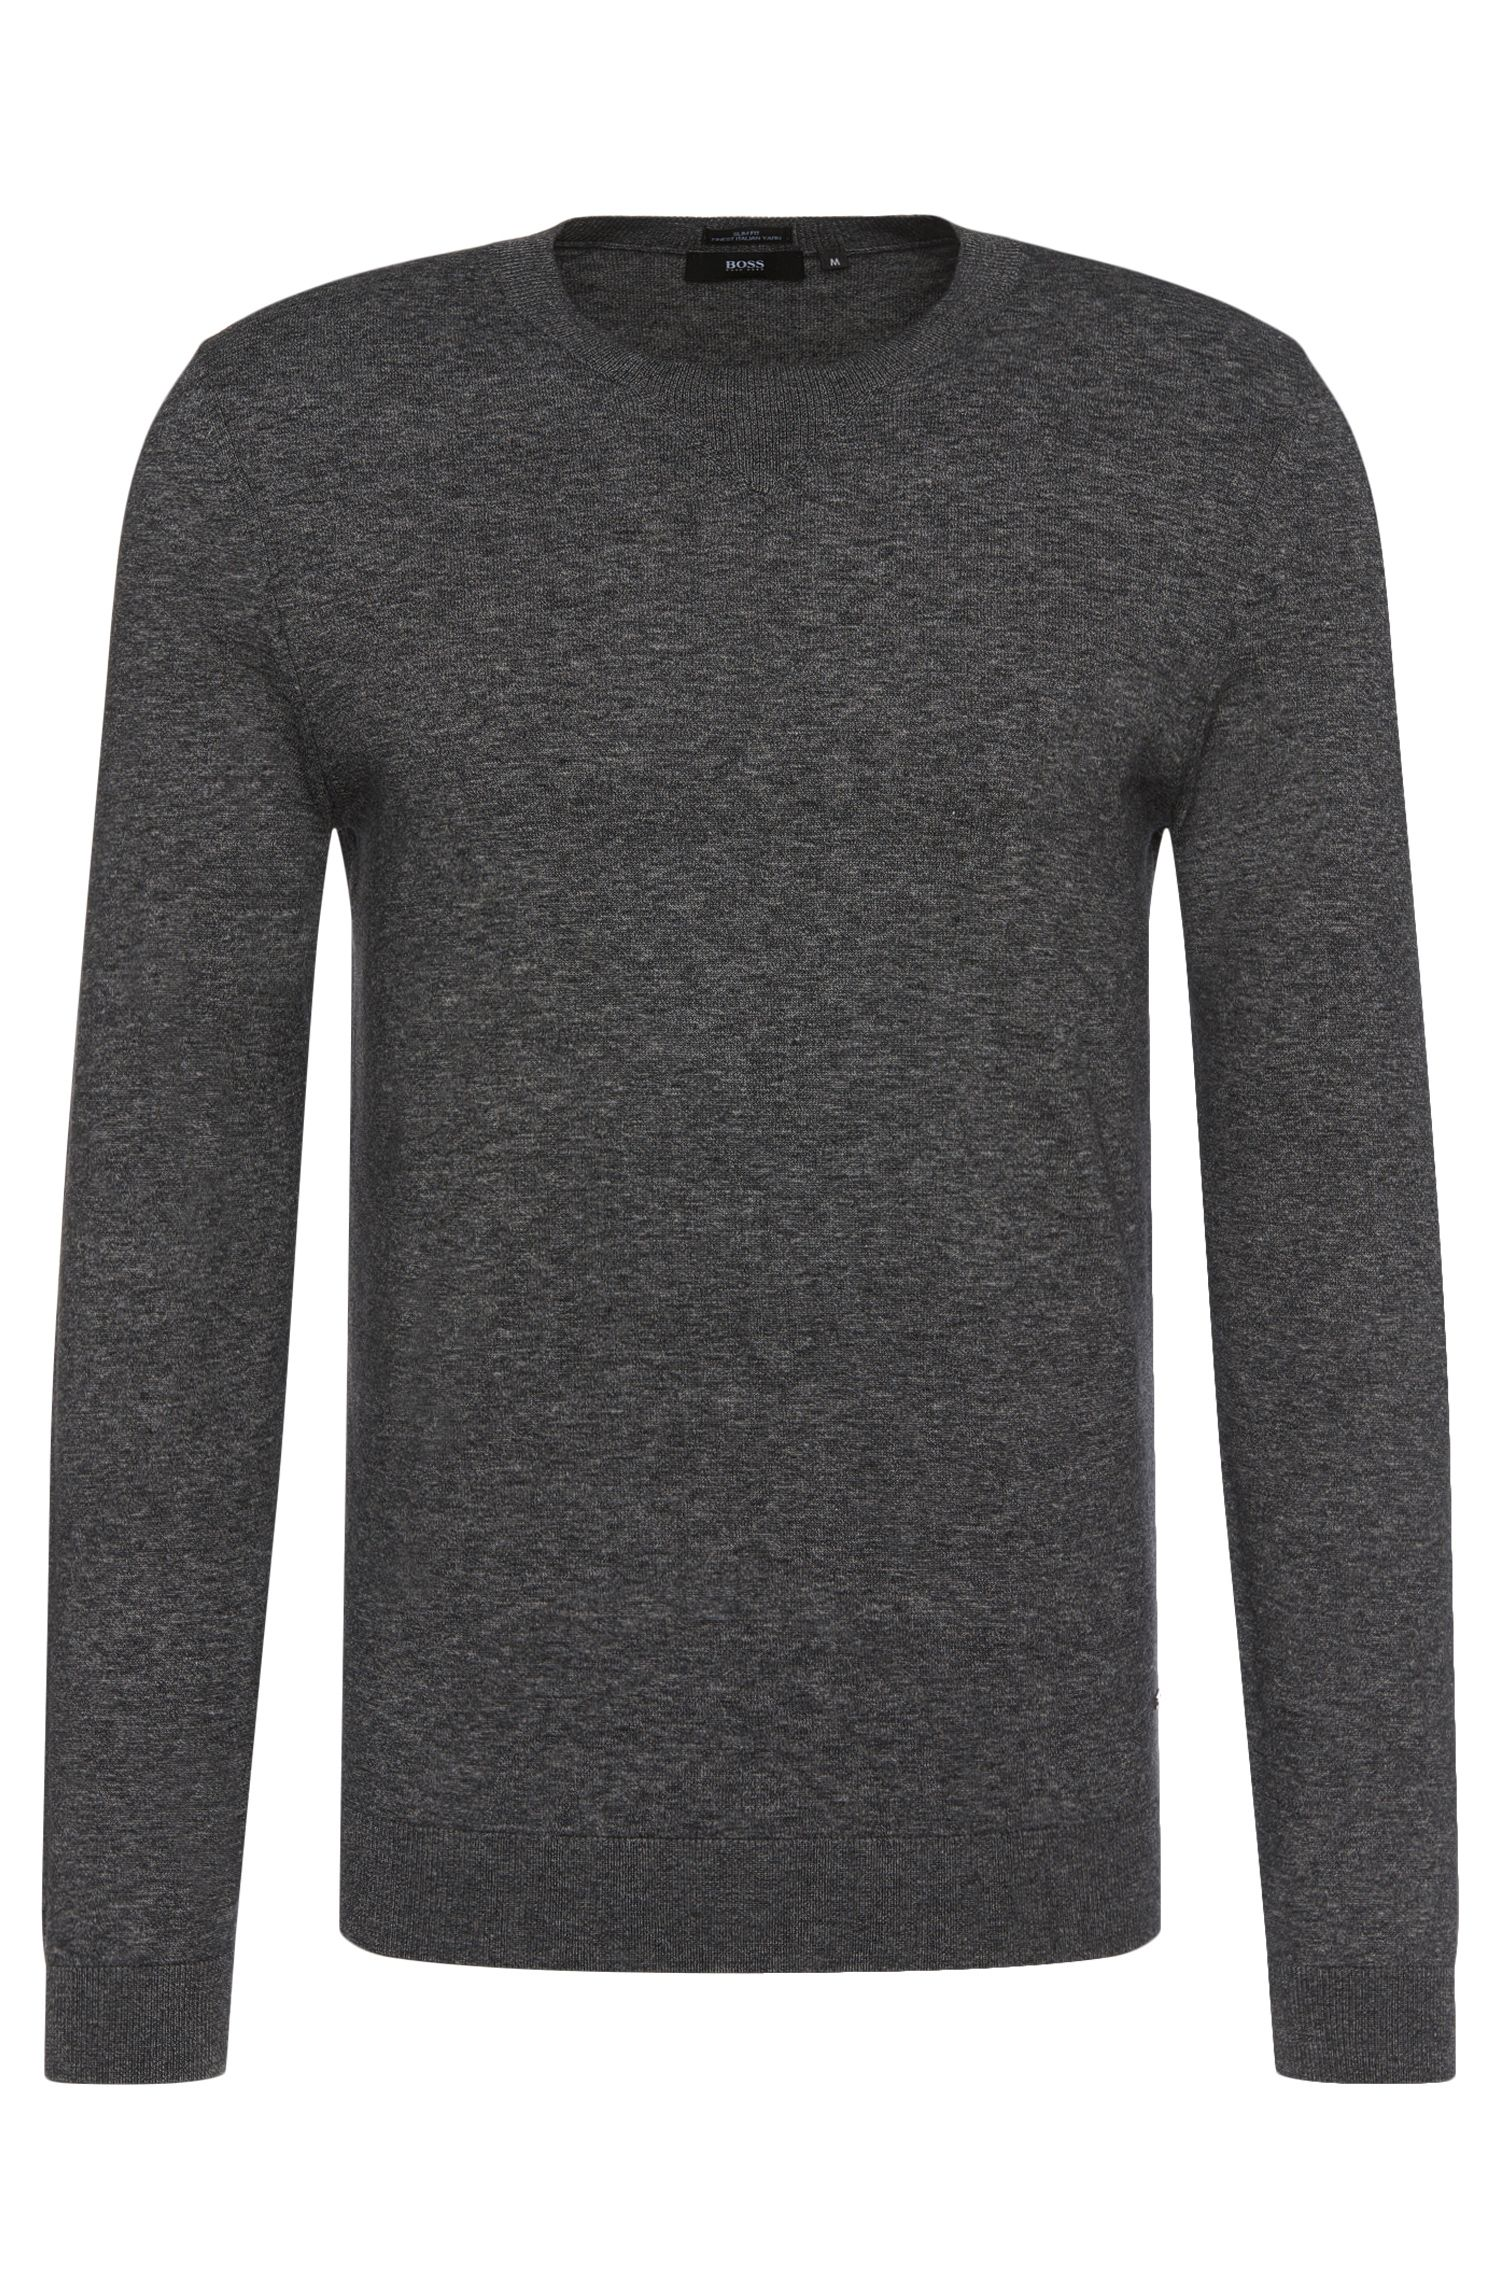 Mottled slim-fit sweater in cotton: 'Ives'